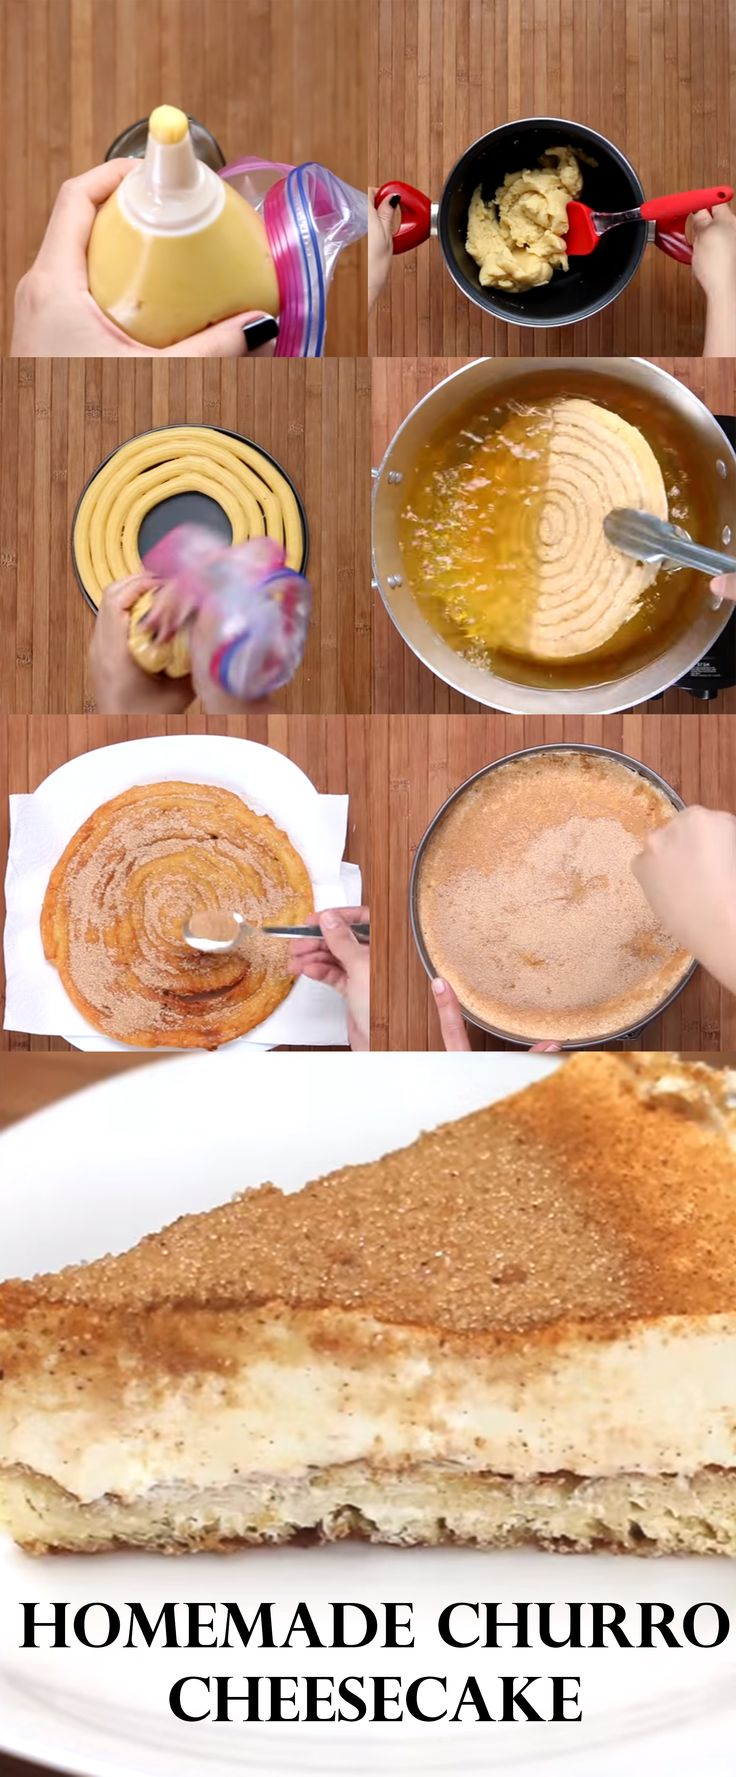 This is a good addition on any occasion or just prepare in advance for when friends and family visit. Check the video and written instructions here==> | Homemade Churro Cheesecake | http://gwyl.io/homemade-churro-cheesecake/